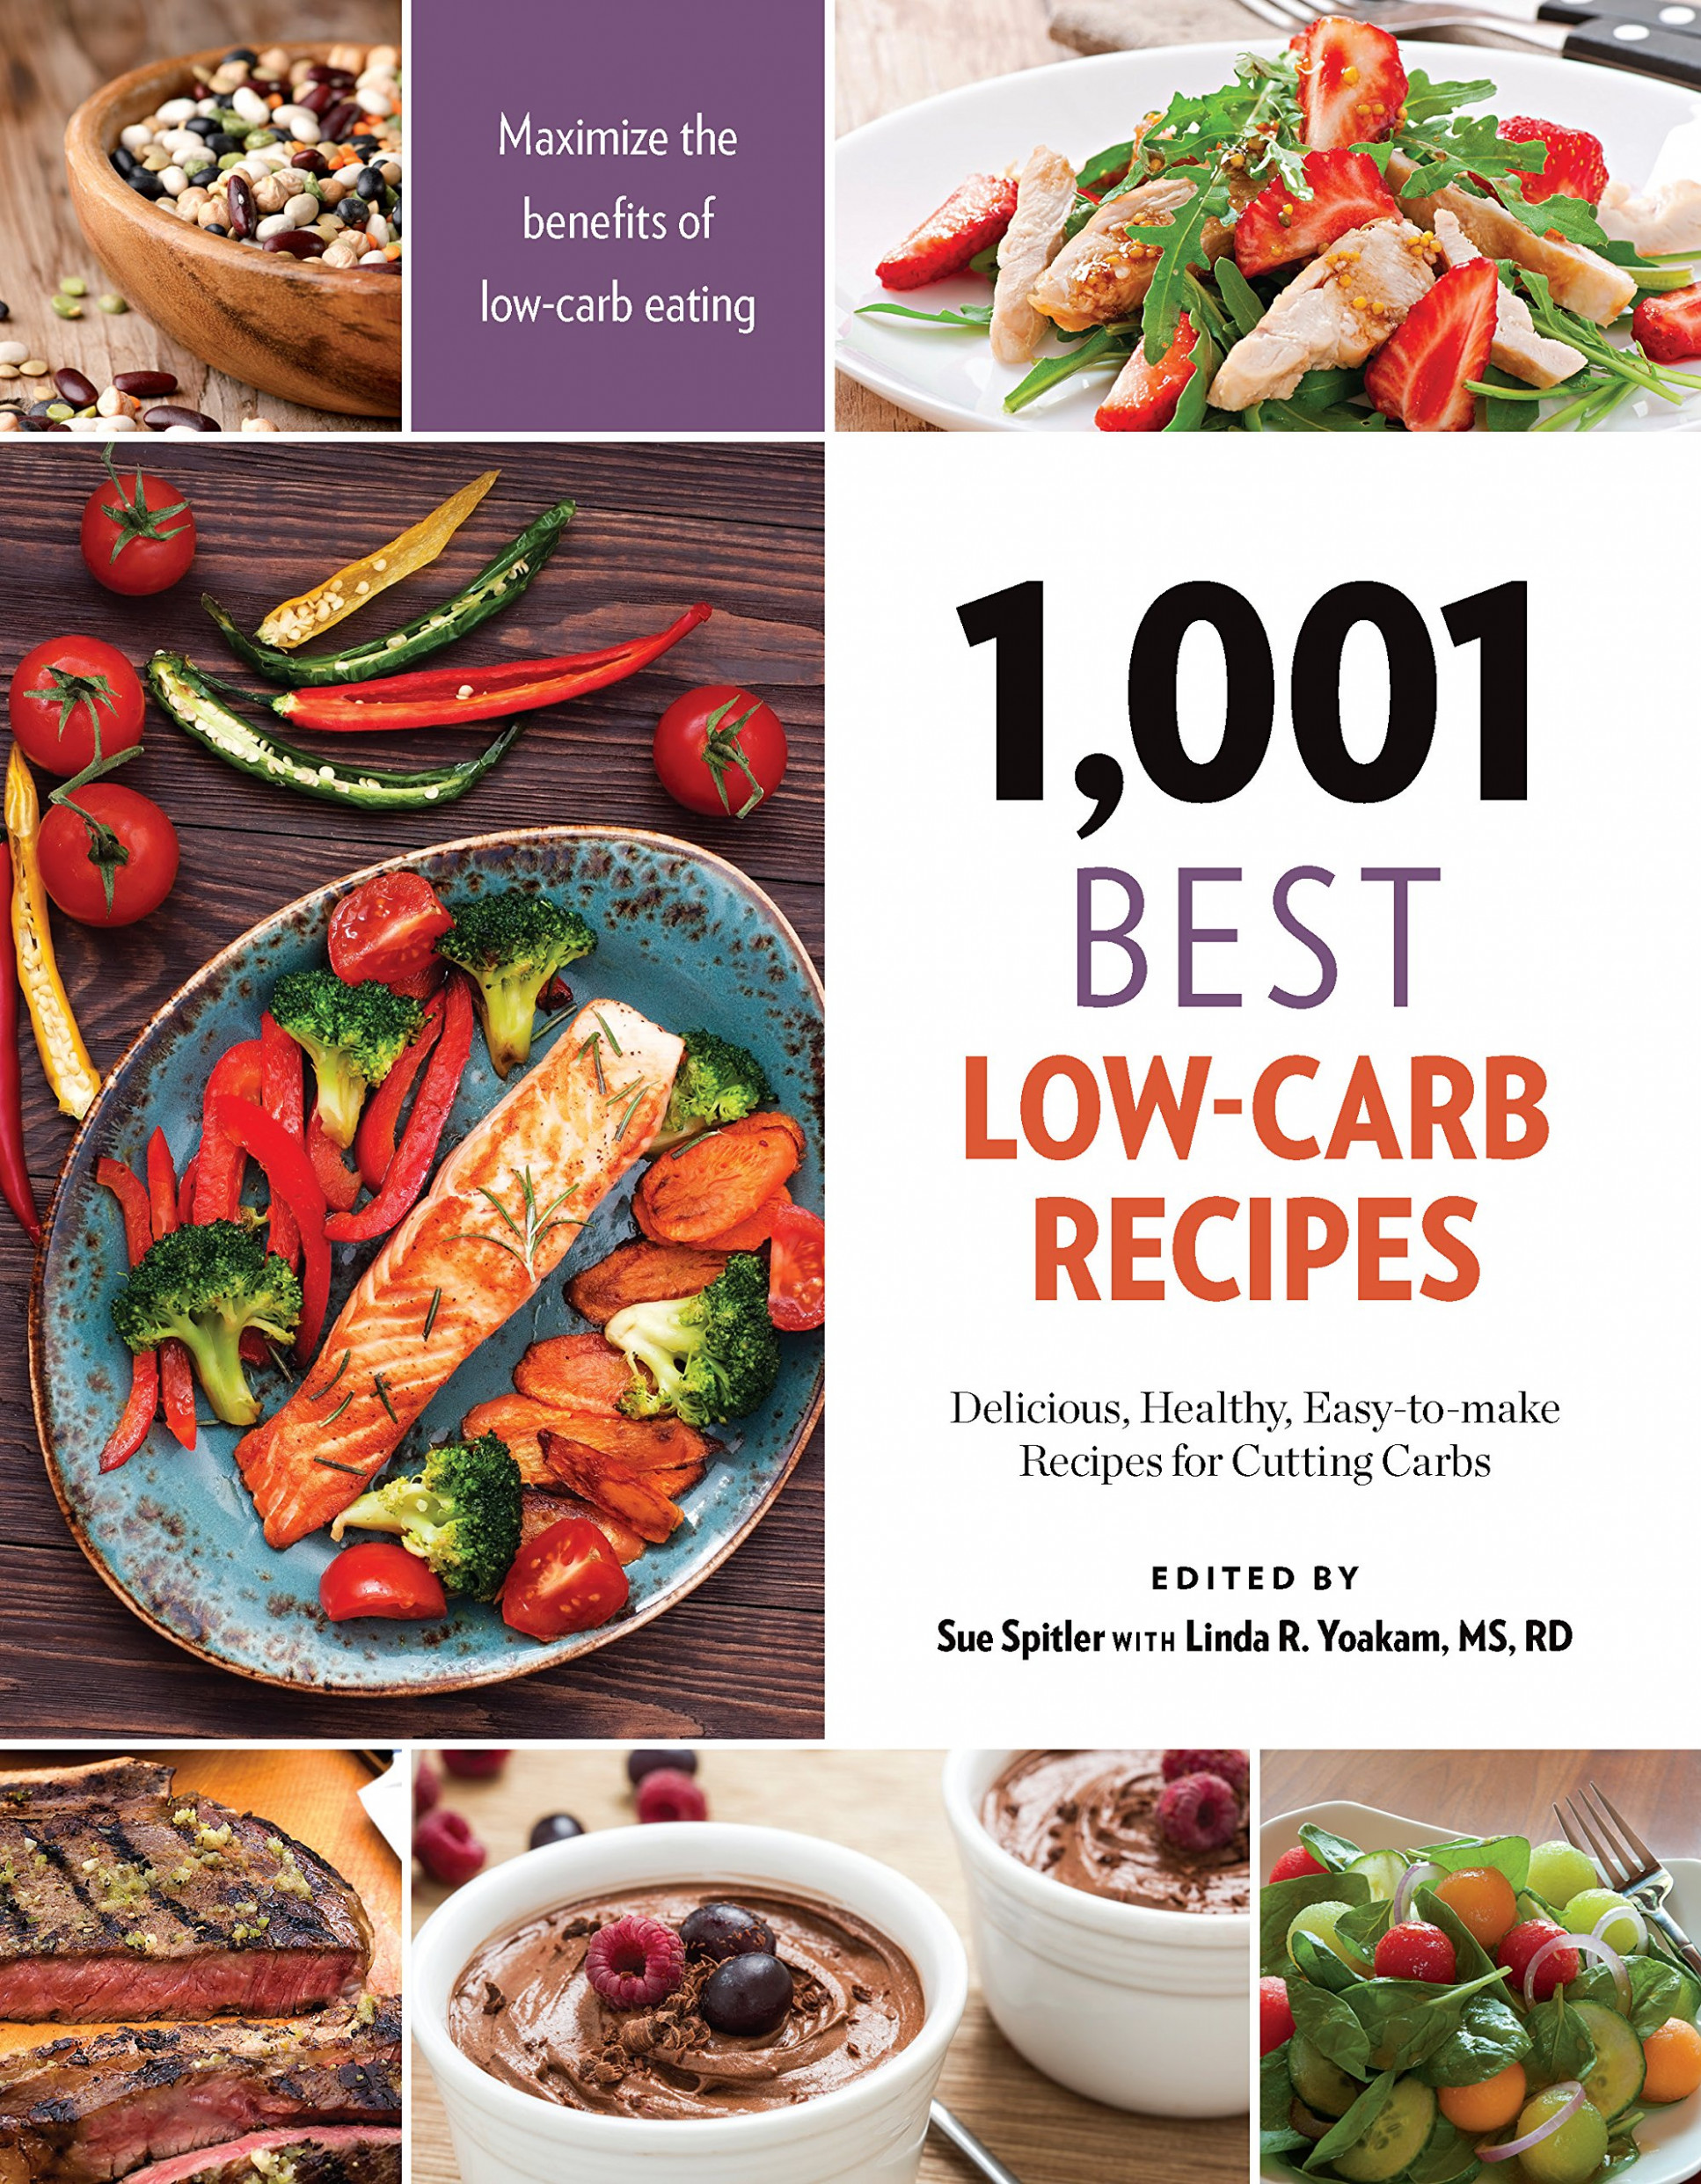 13, 133 Best Low-Carb Recipes: Delicious, Healthy, Easy-to ..